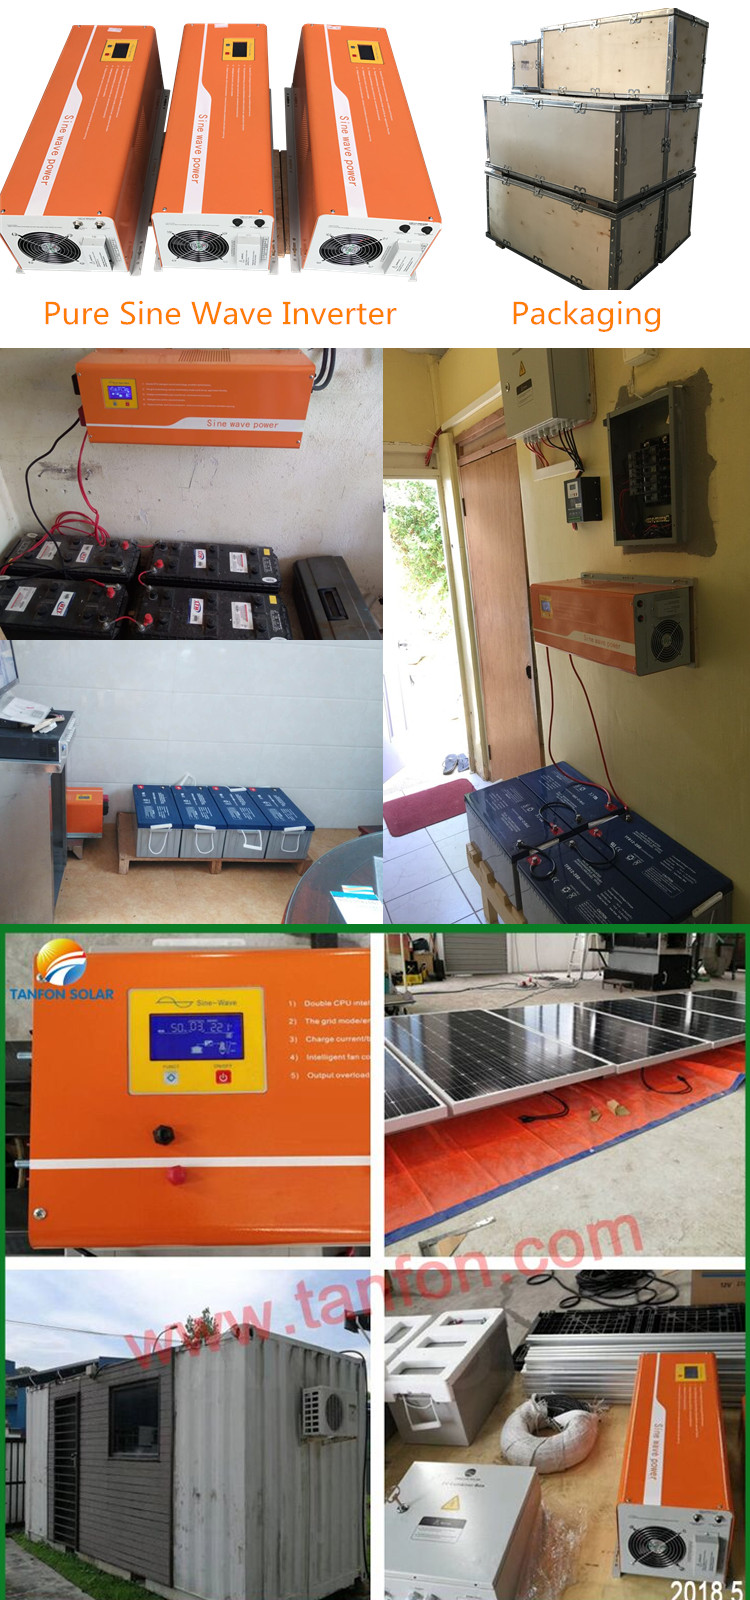 inverter pure sine wave off grid power for solar system